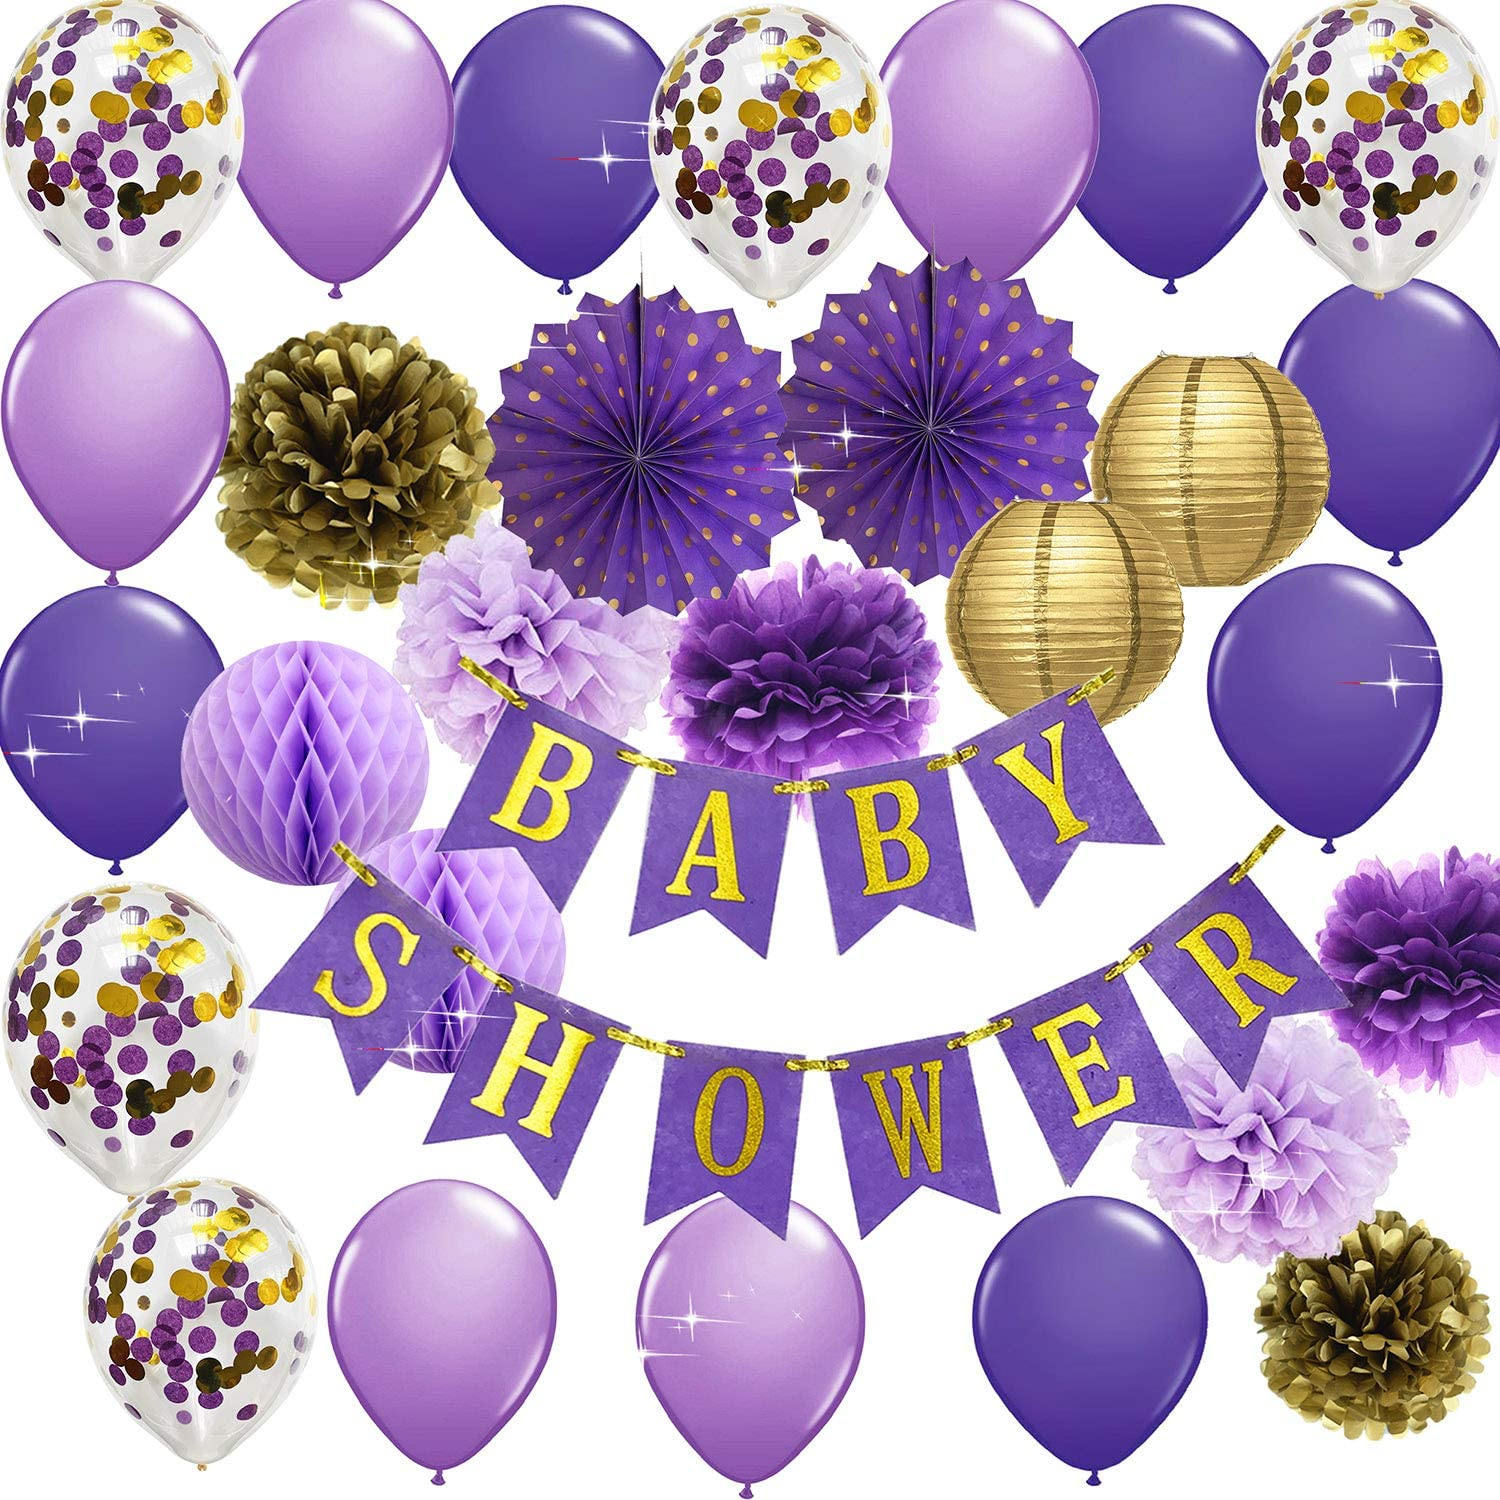 Qian's Party Purple Gold Baby Shower Decorations Purple Gold Princess Party Decorations Purple Princess Baby Shower Confetti Purple Gold Polka Dot Fan Party Decor